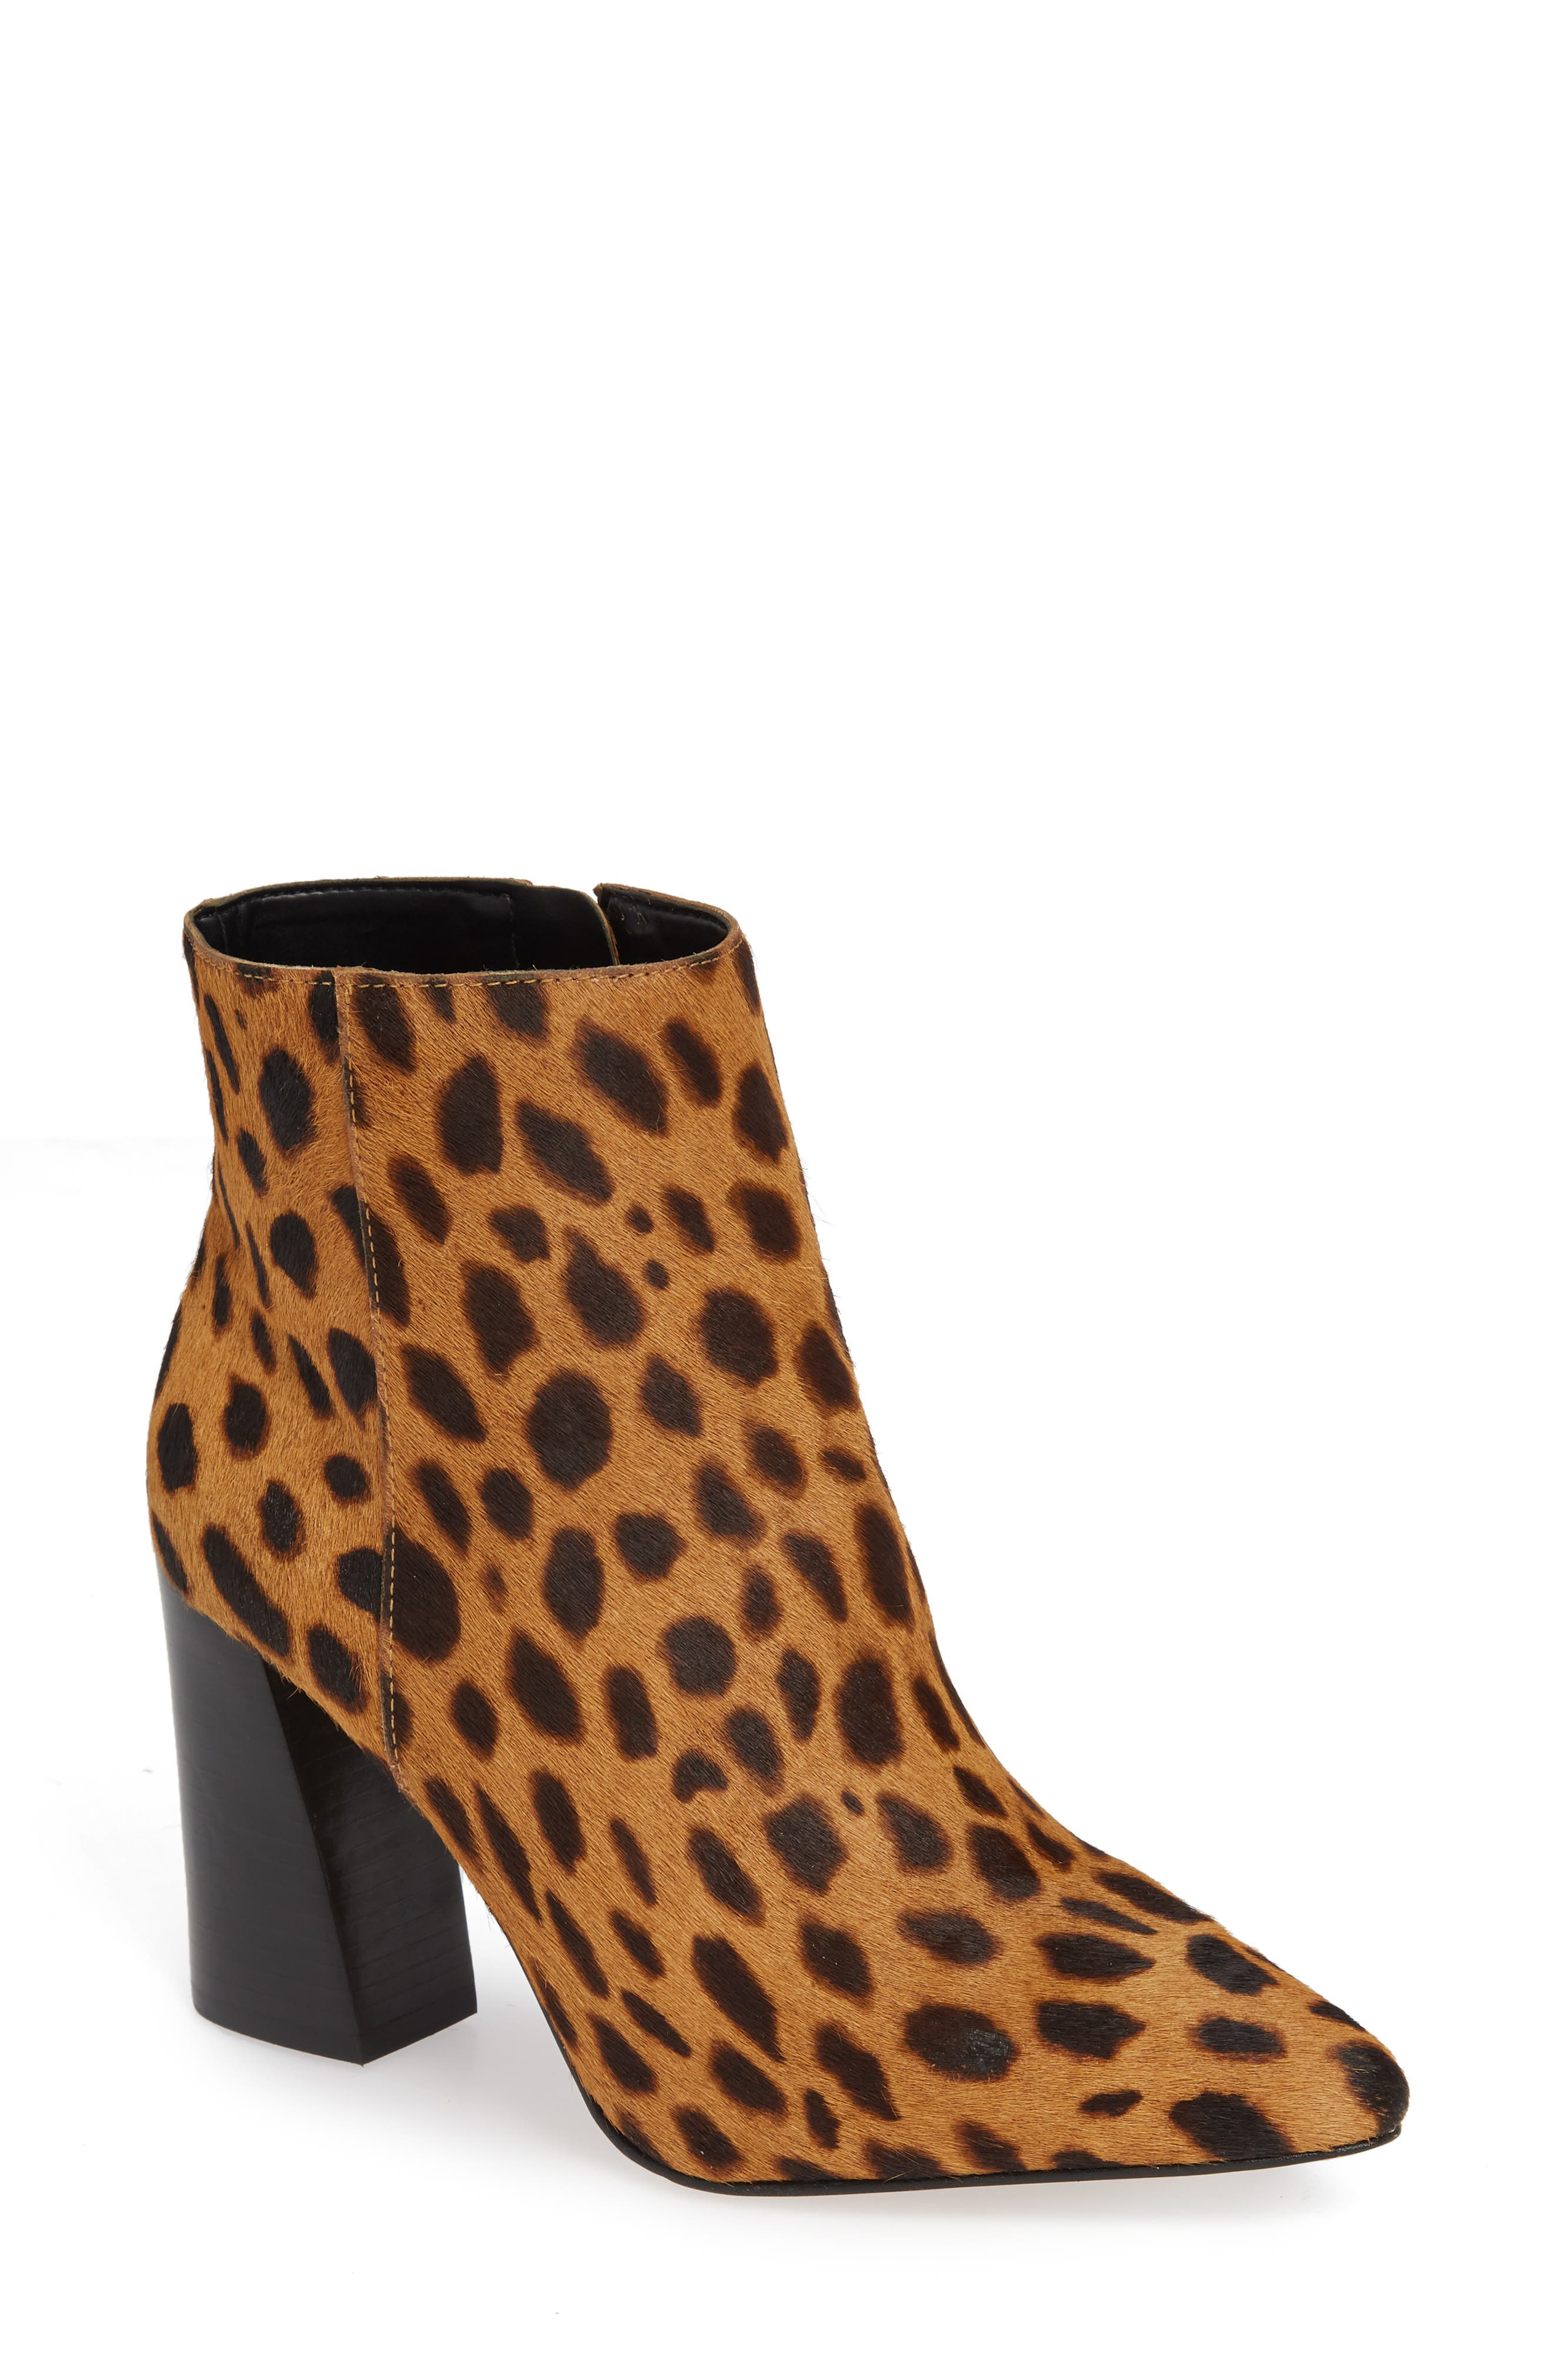 Sale alerts for  Thelmin Genuine Calf Hair Bootie - Covvet